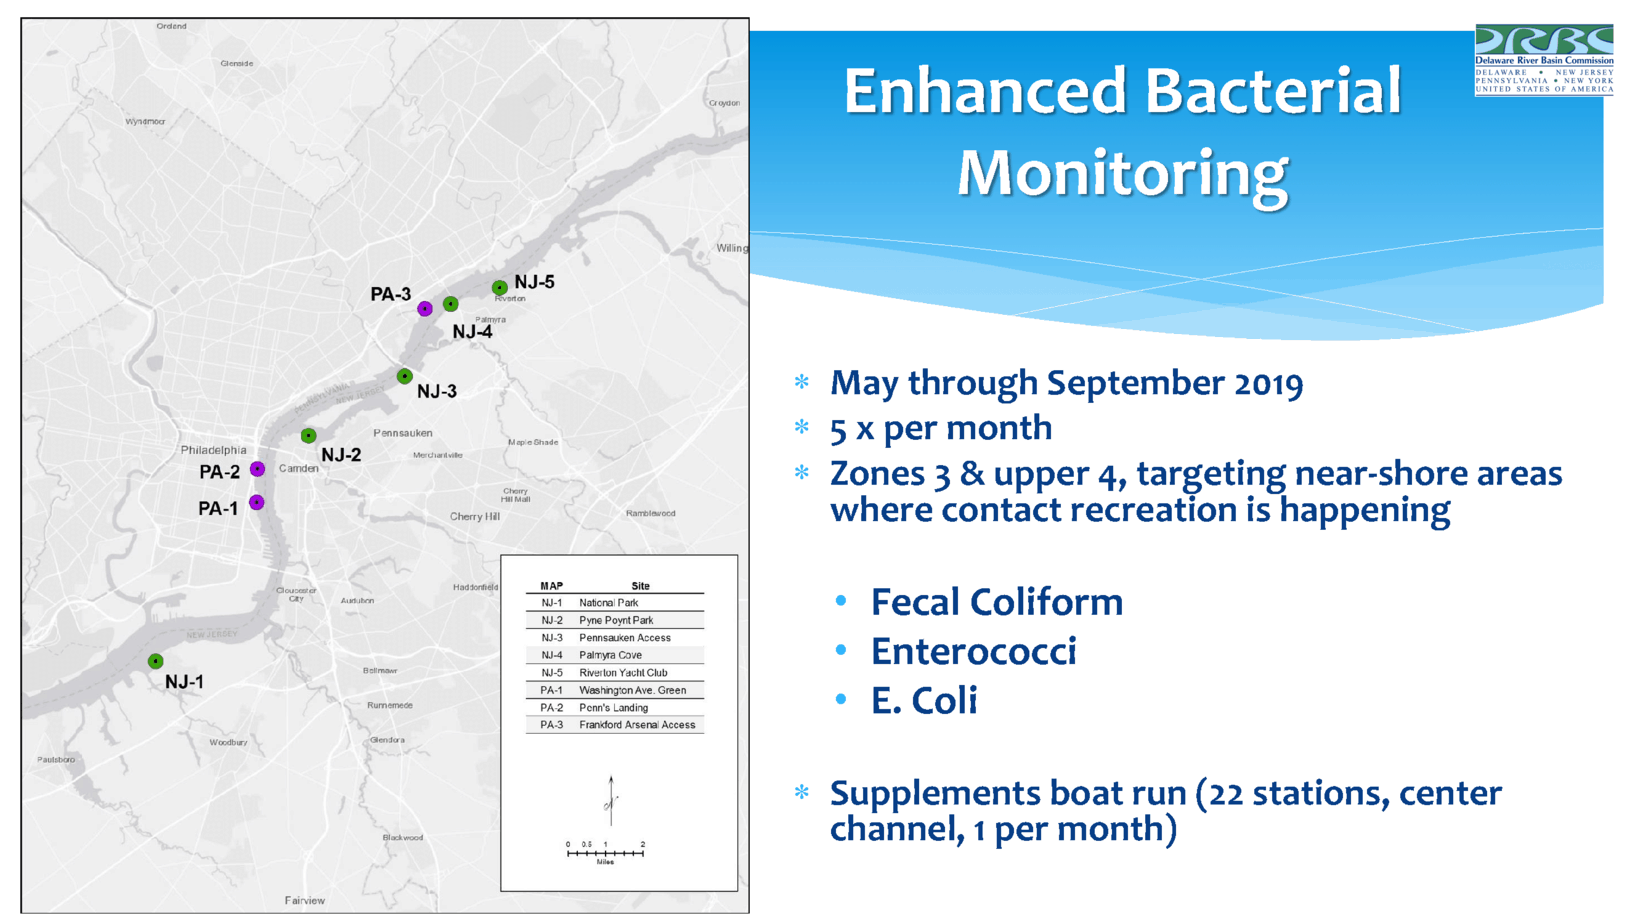 bacterial-monitoring_drbc_Page_2